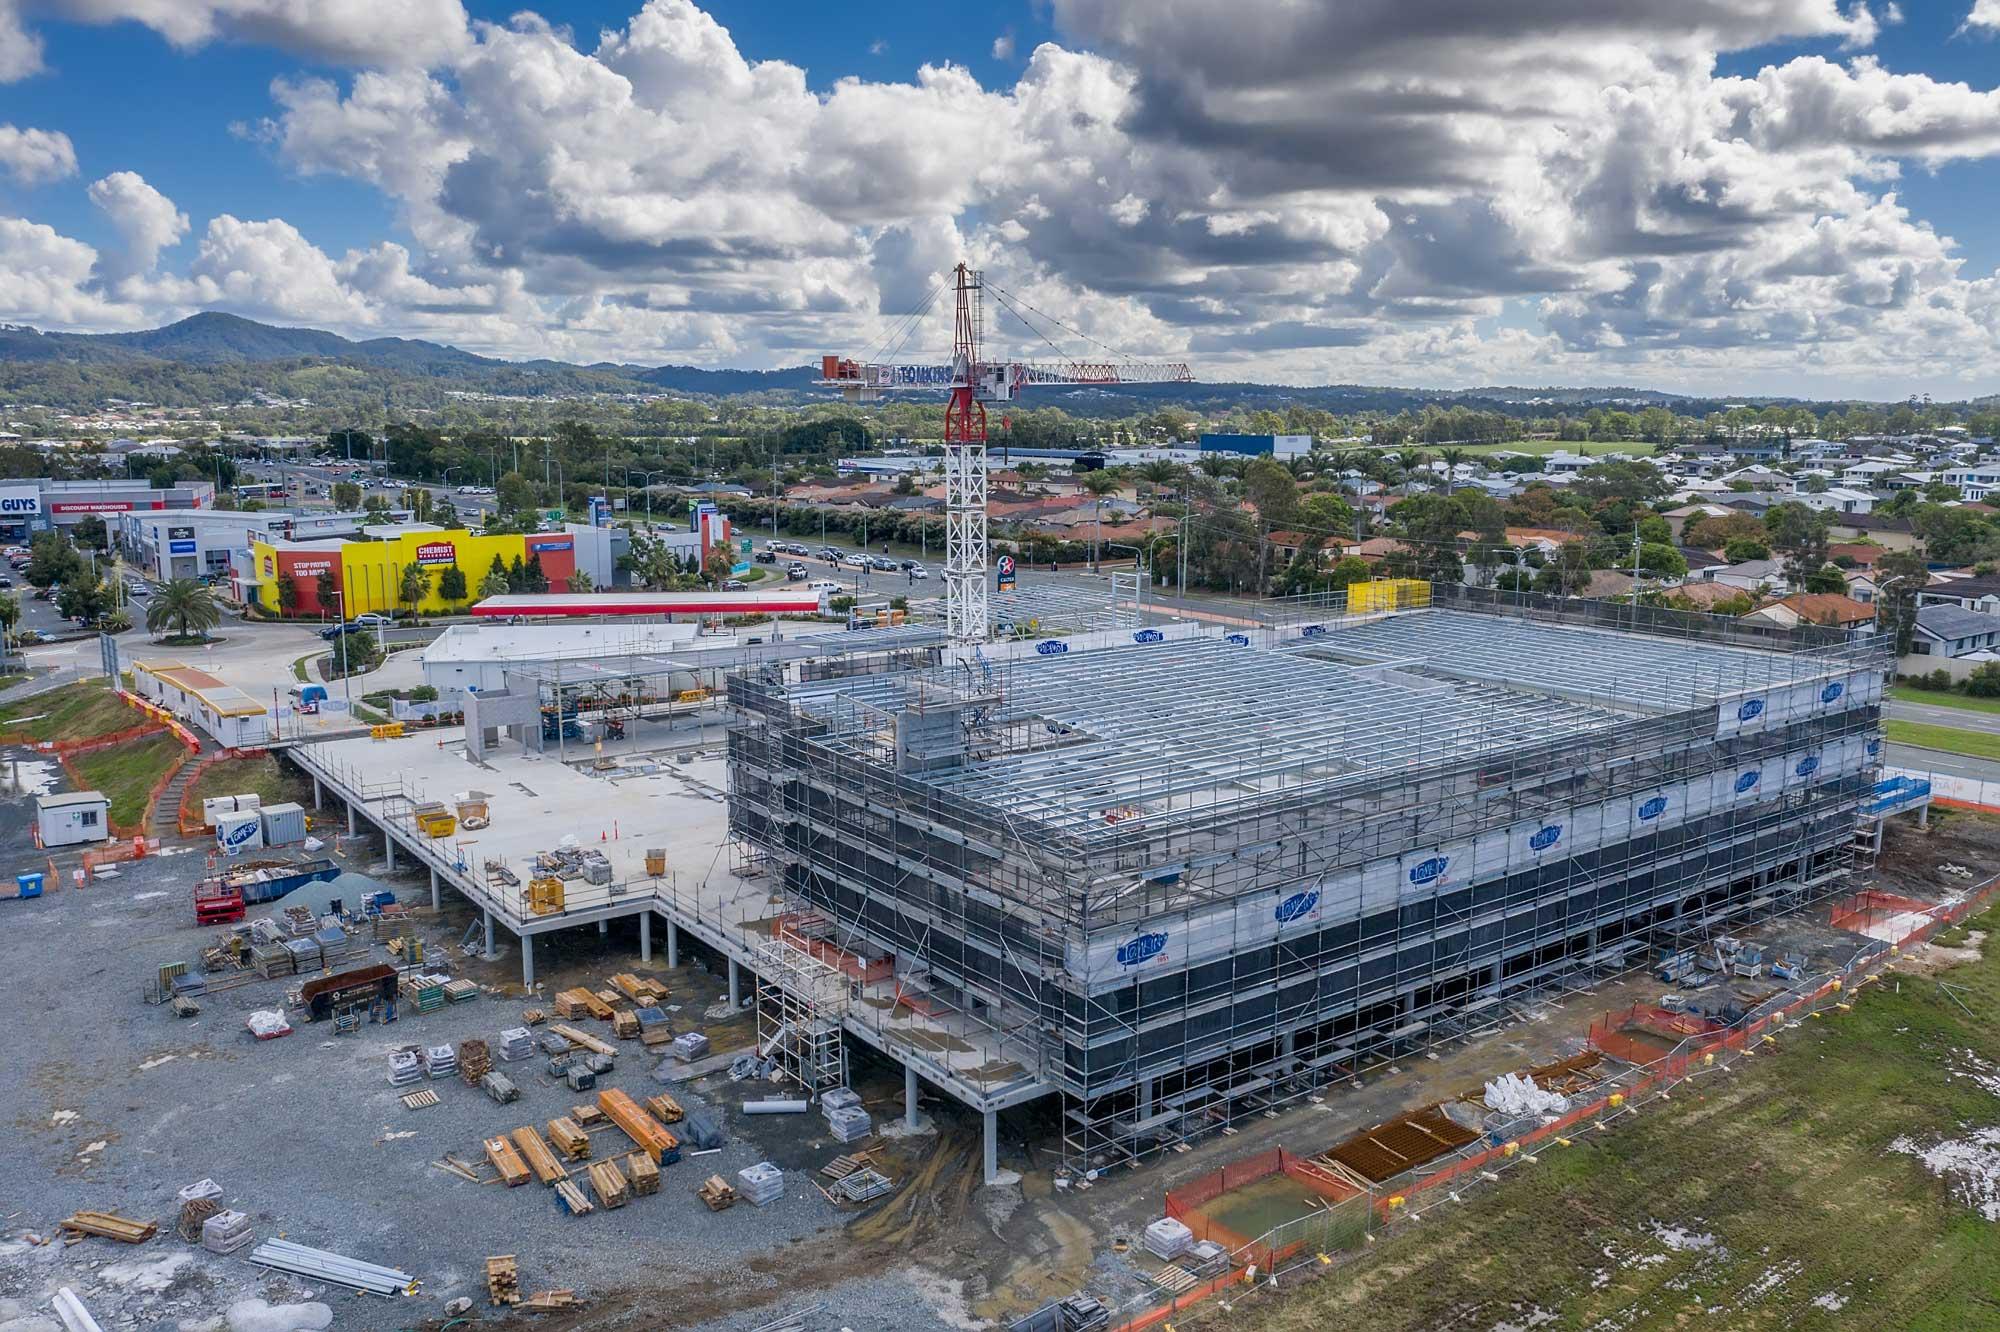 Construction site drone video of medical centre development at Helensvale